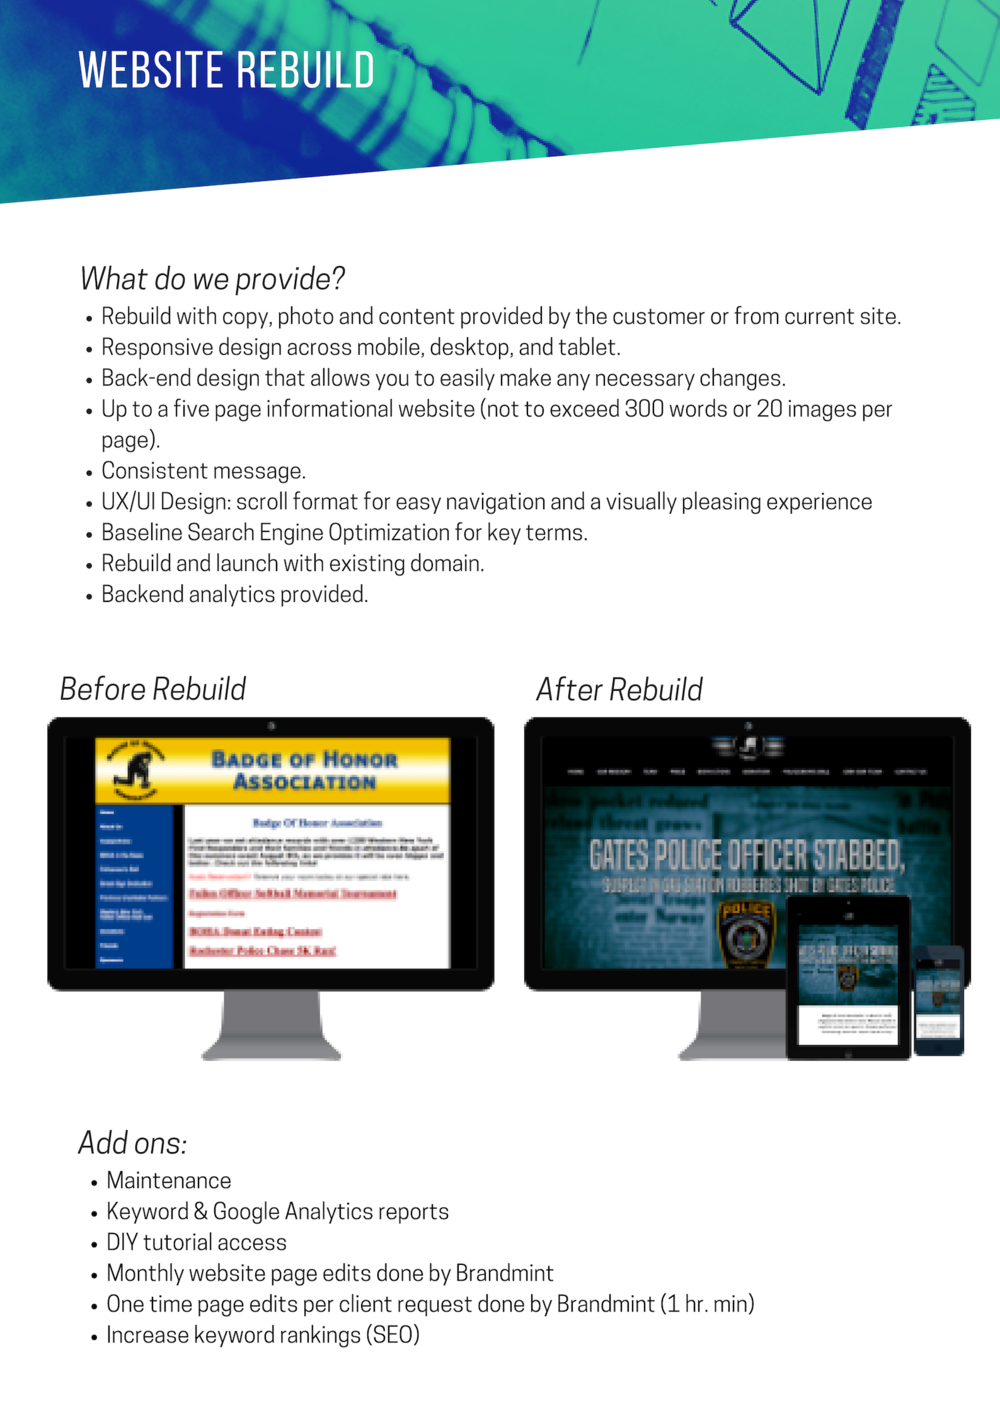 Website rebuild - Selling Points: You will not find a better price for the deliverables. Most agencies charge tens of thousands of dollars for what you receive with Brandmint.